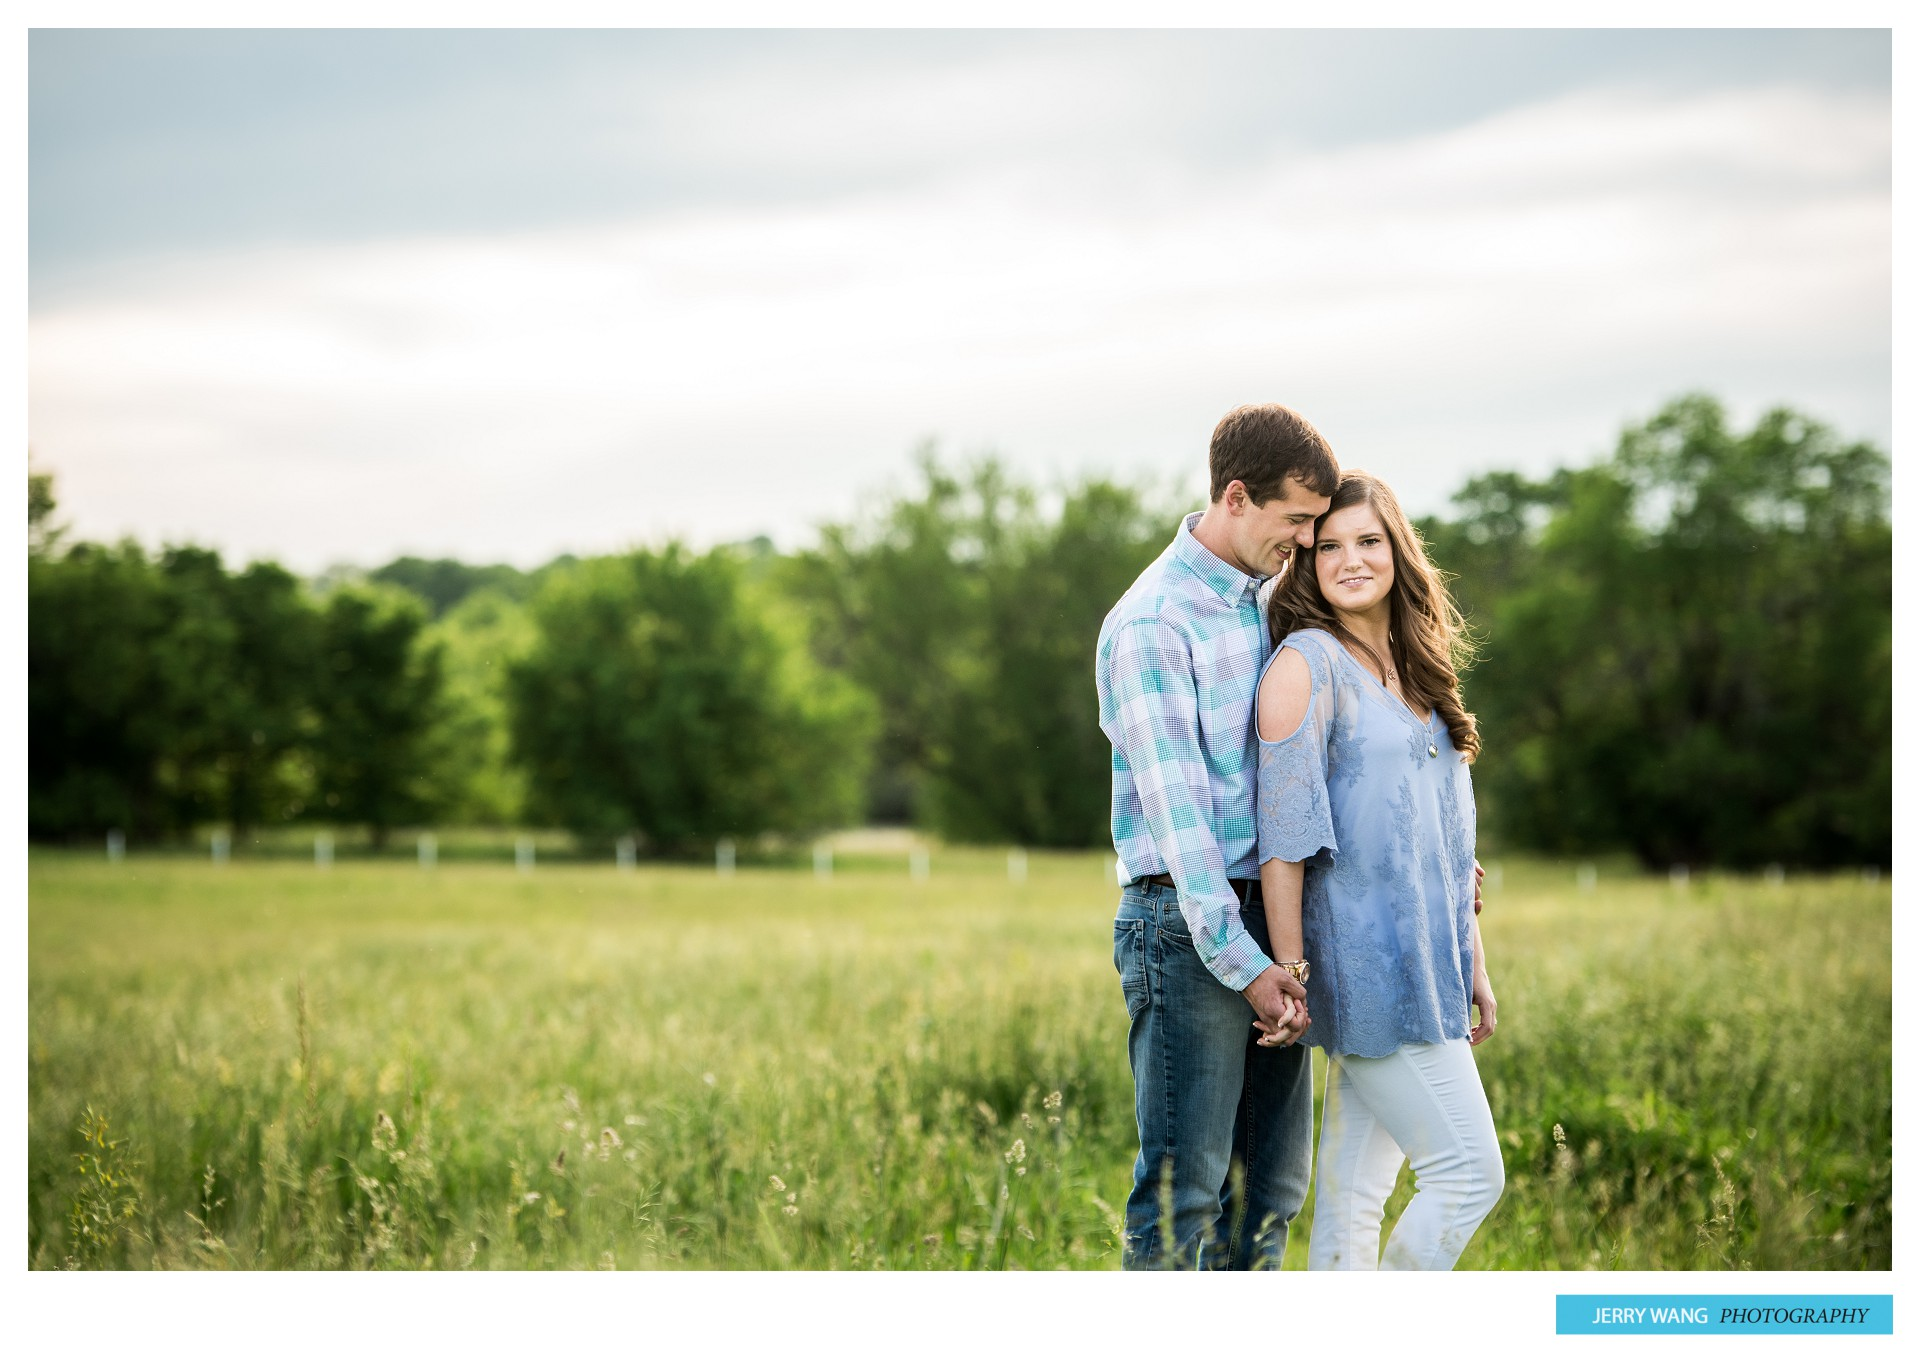 S&B_Spring_Hills_Kansas_Hickory_Creek_Engagement_Session 8